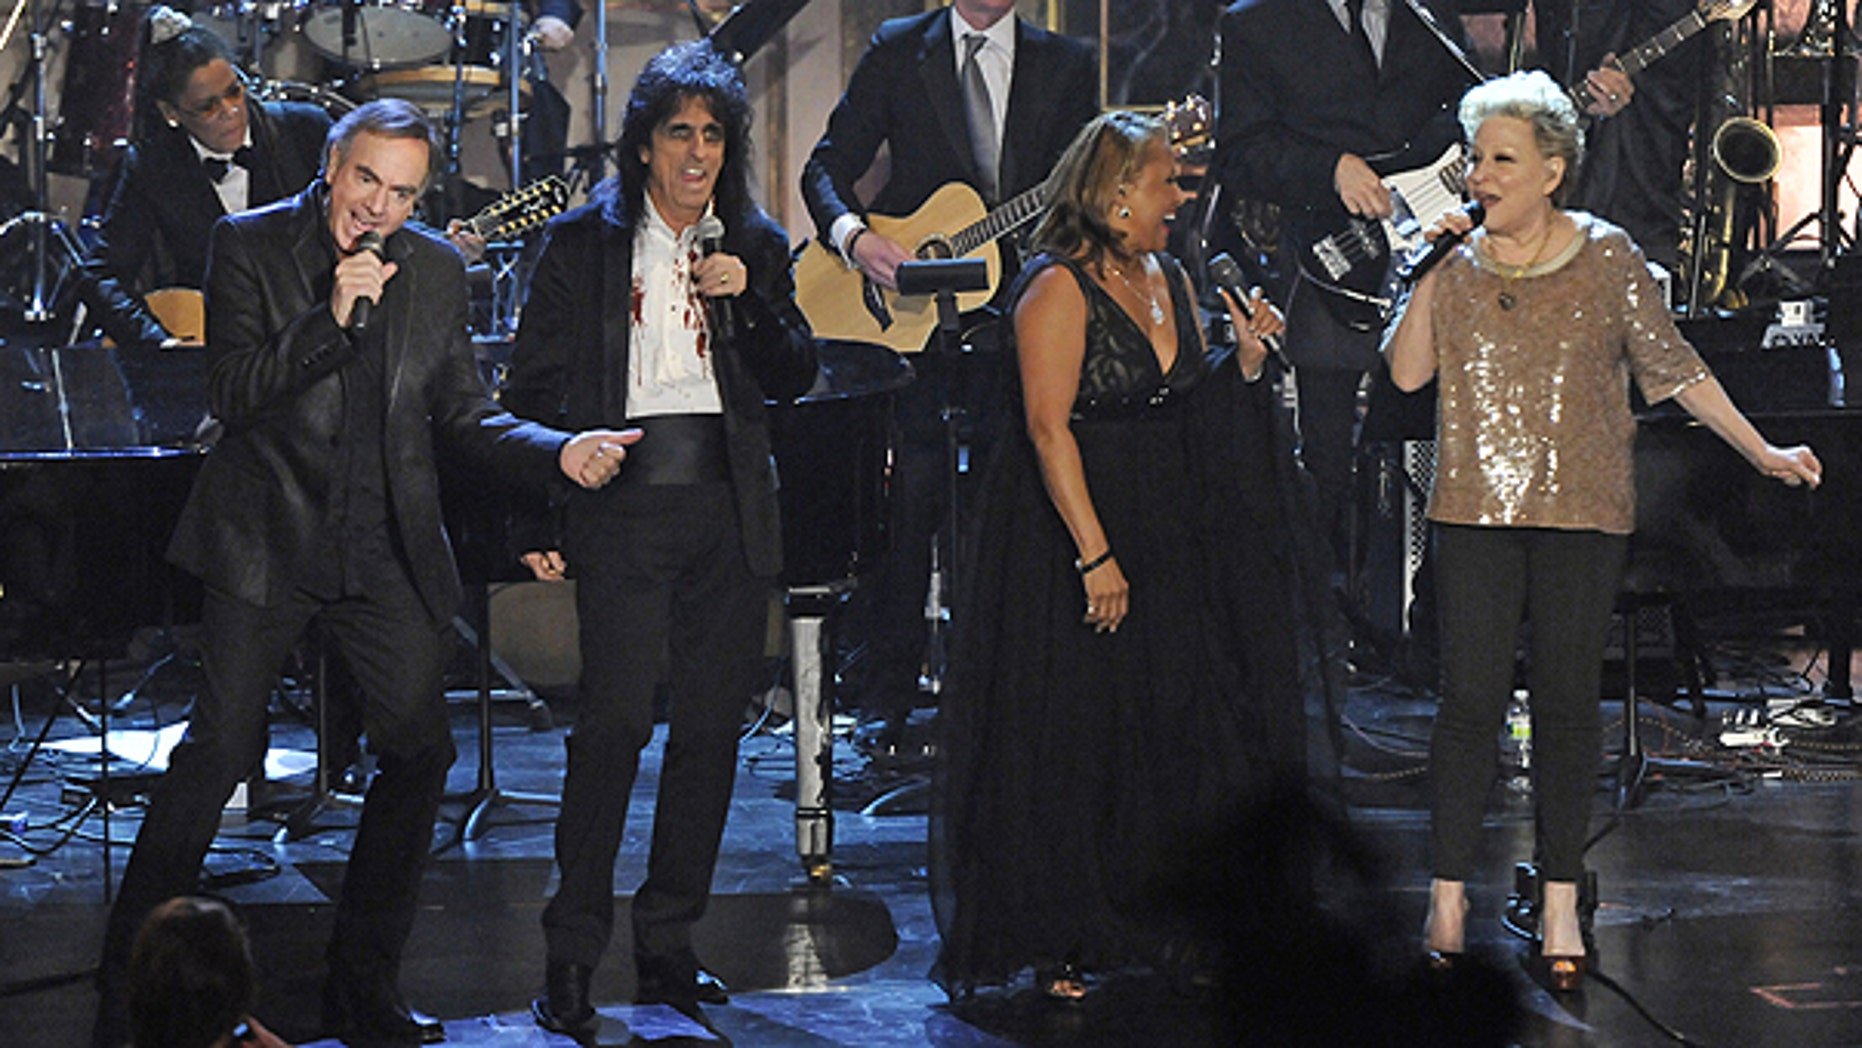 March 15: Left to right, Neil Diamond, Alice Cooper, Darlene Love, and Bette Midler perform at the Rock and Roll Hall of Fame induction ceremony in New York.